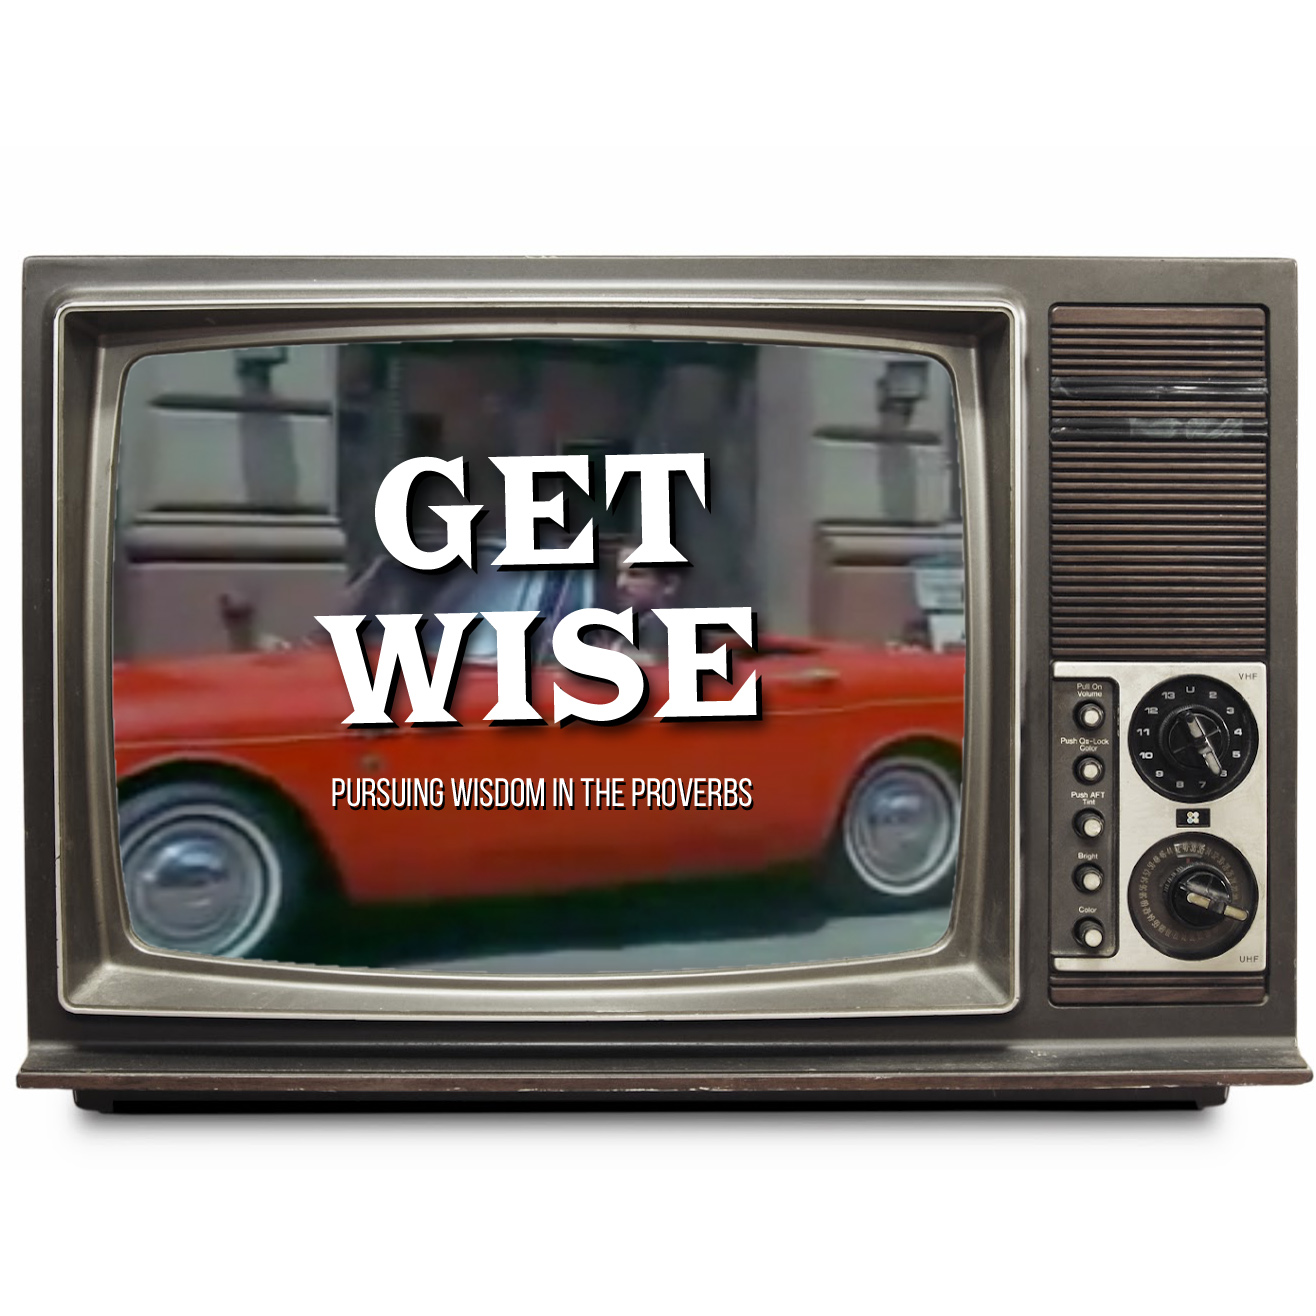 Get Wise: Pursuing Wisdom in the Proverbs